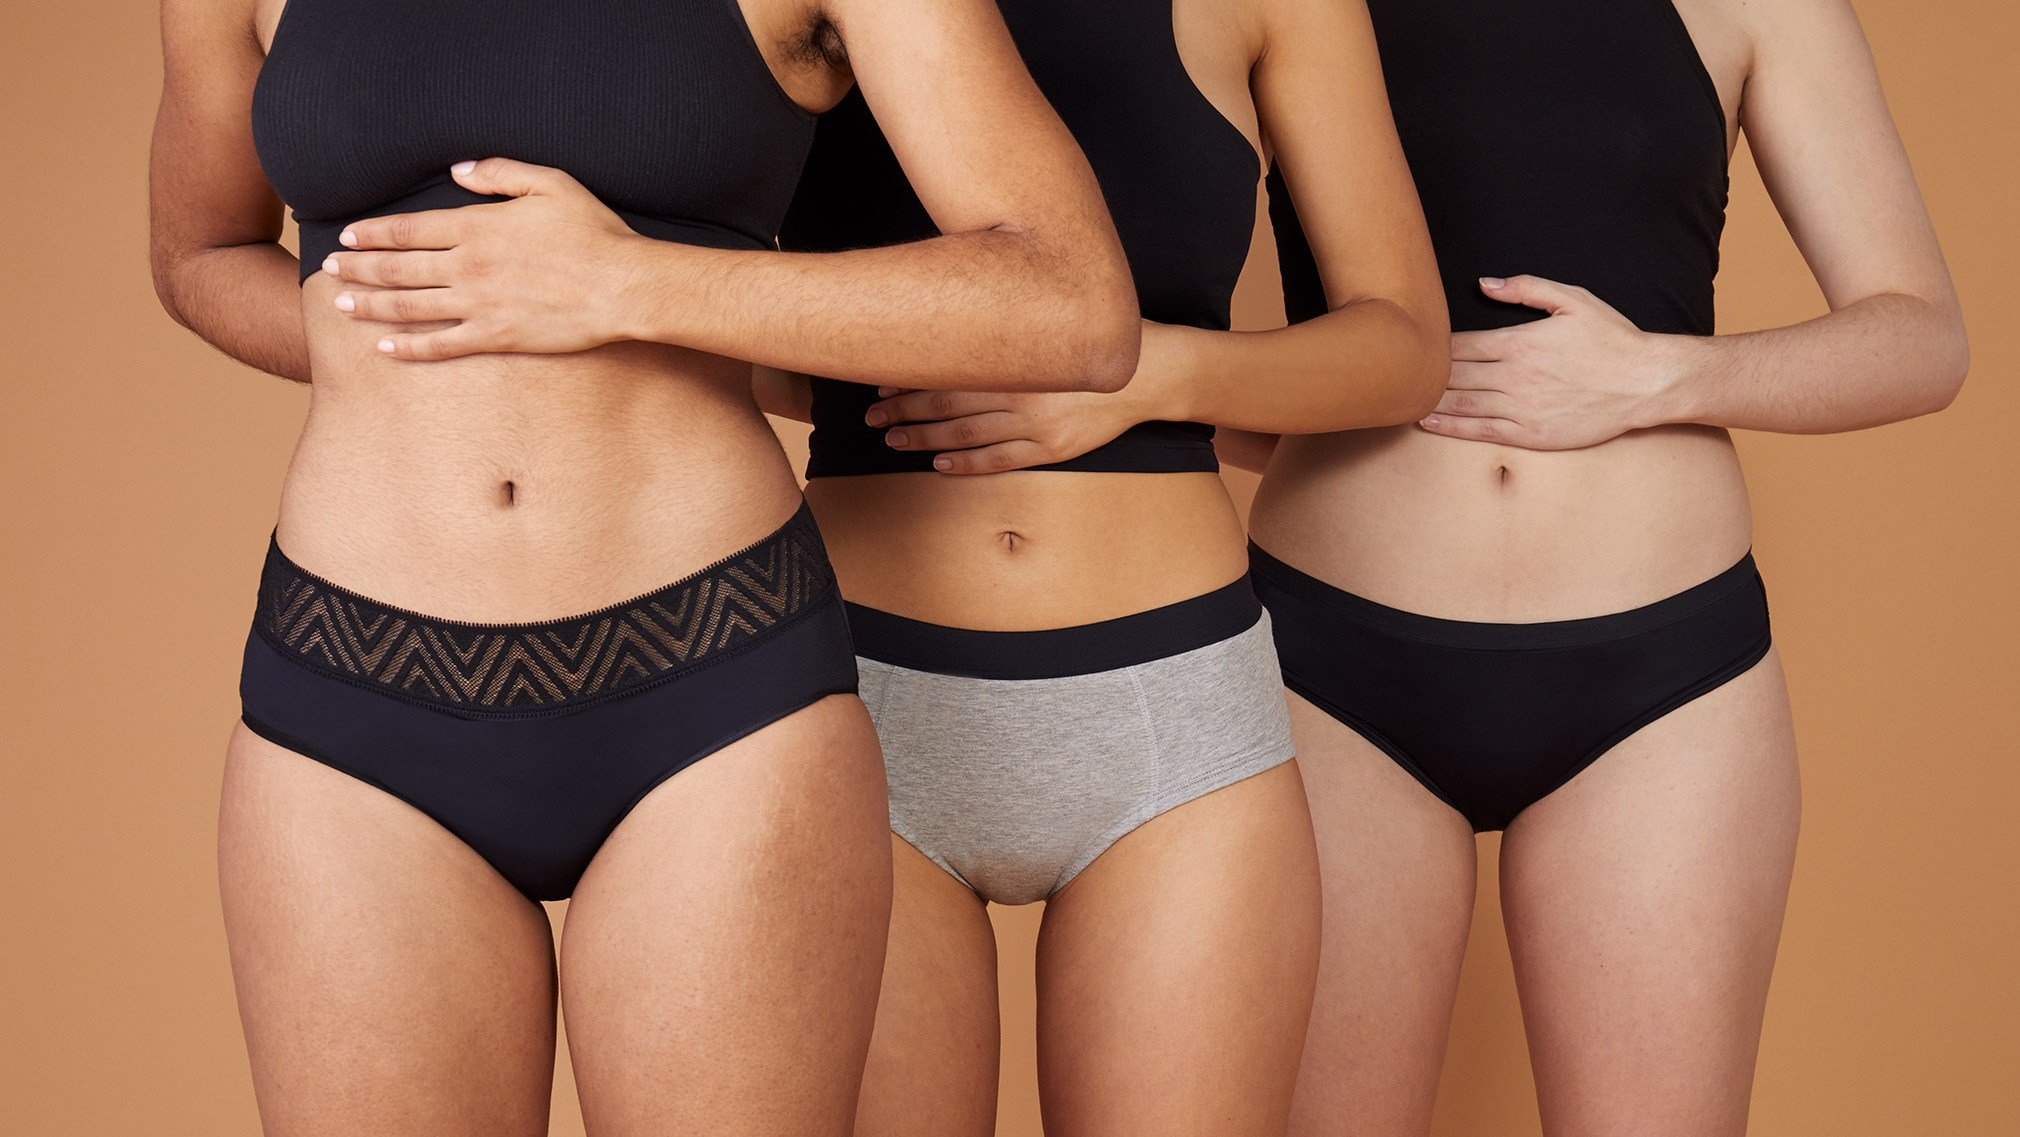 Image via Thinx website